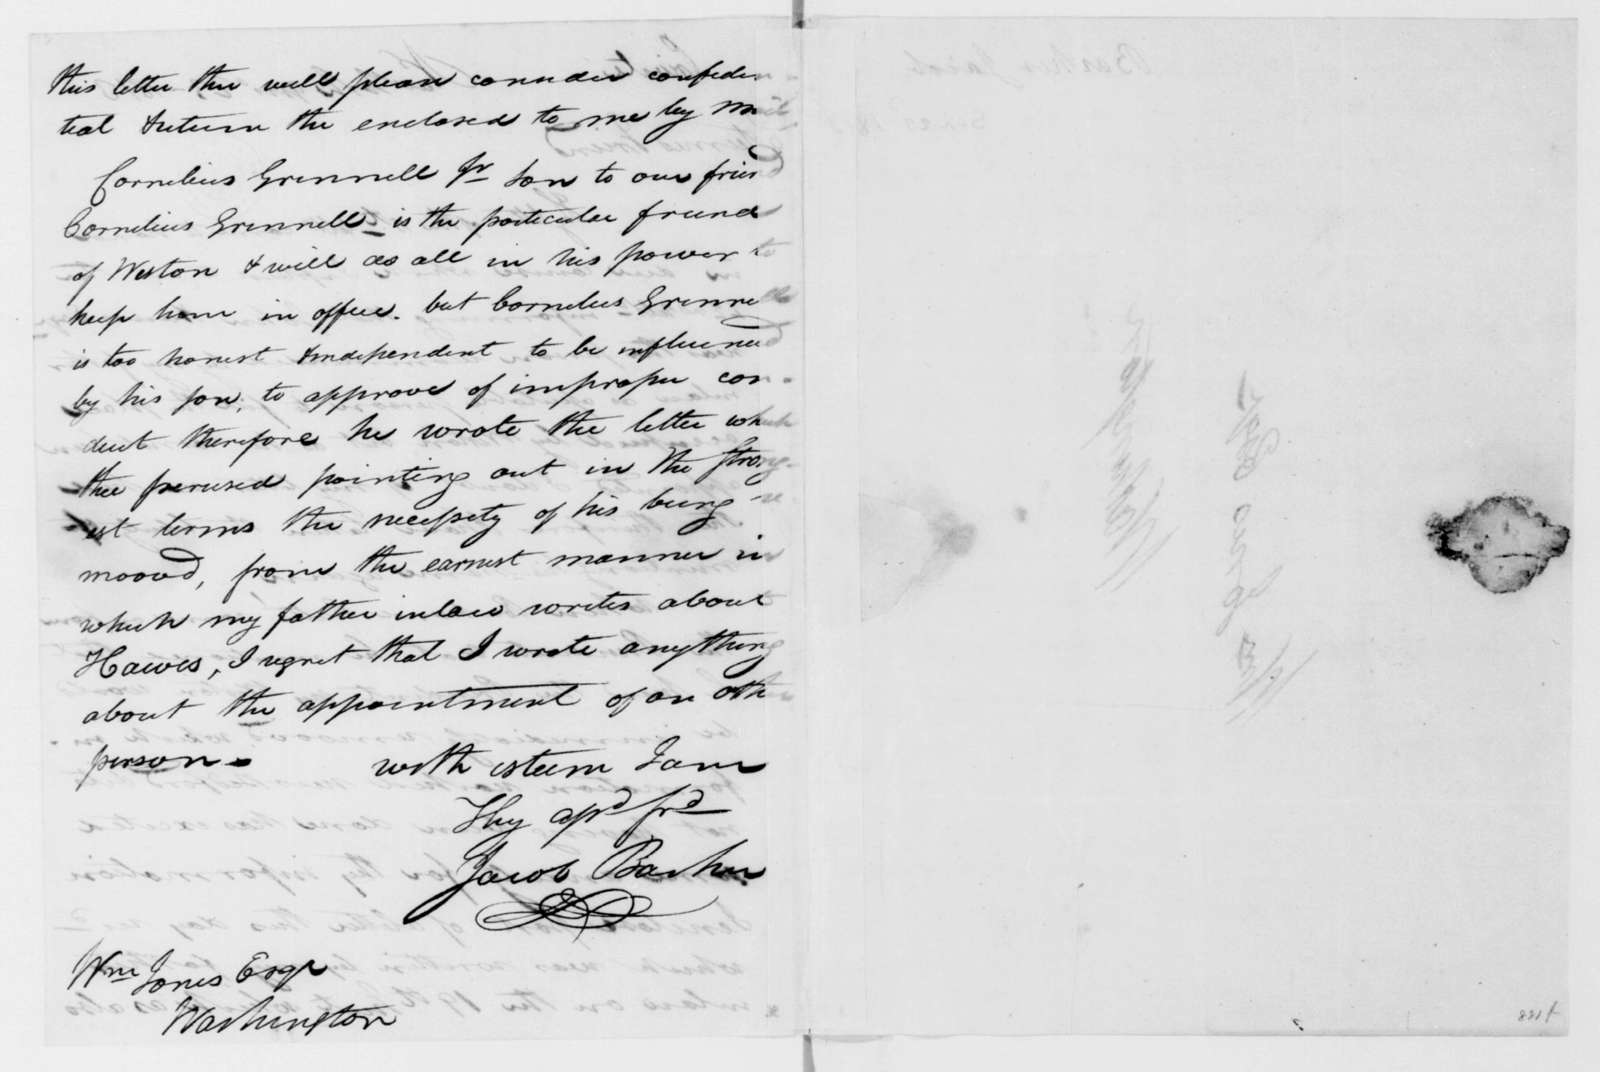 Jacob Barker to William Jones, September 23, 1813.